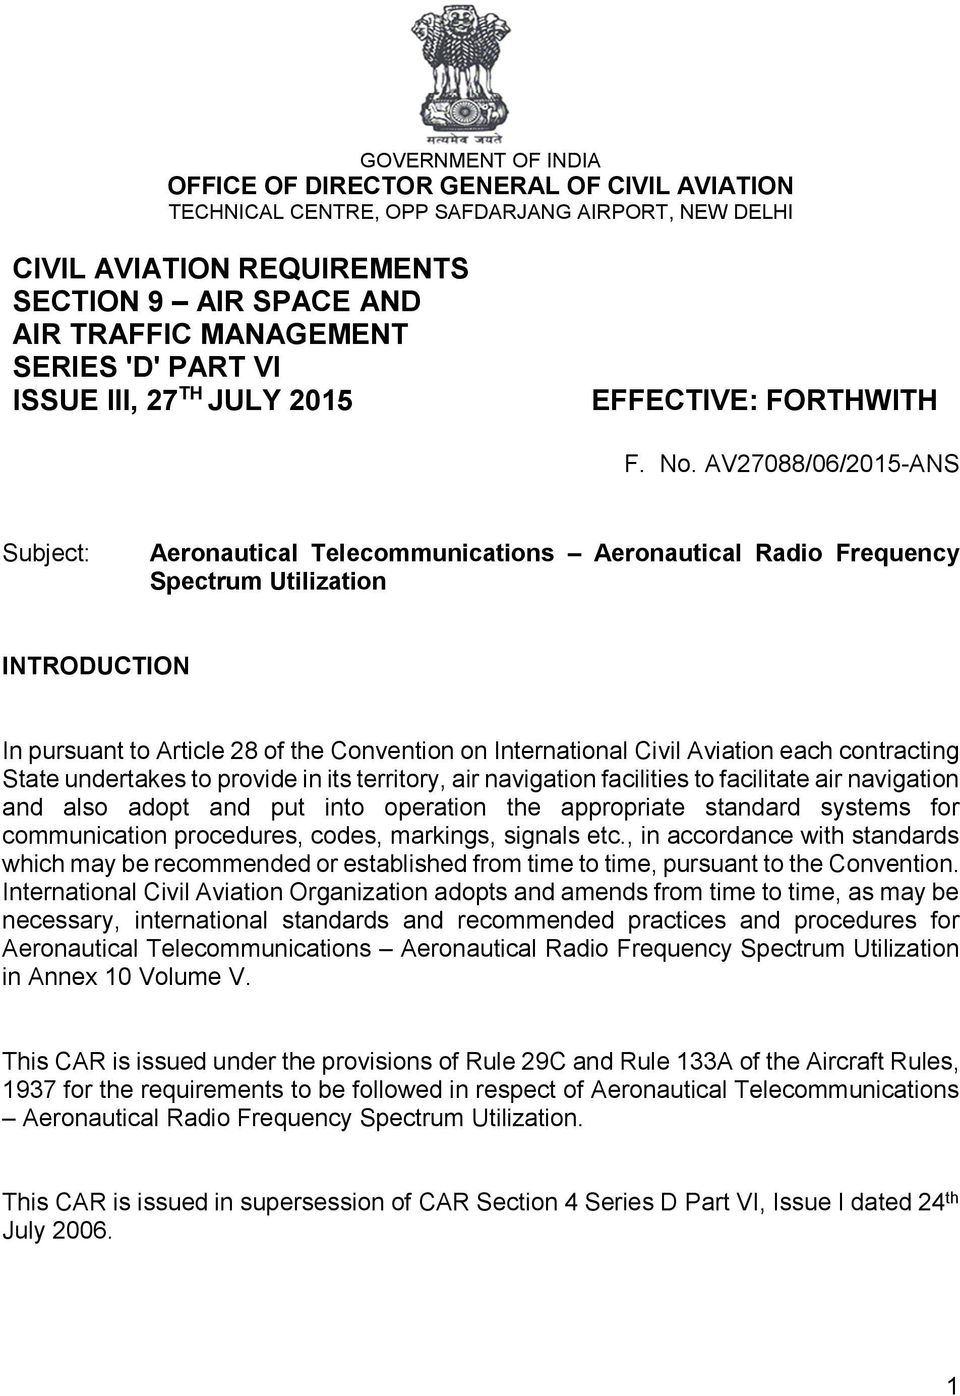 AV27088/06/2015-ANS Subject: Aeronautical Telecommunications Aeronautical Radio Frequency Spectrum Utilization INTRODUCTION In pursuant to Article 28 of the Convention on International Civil Aviation